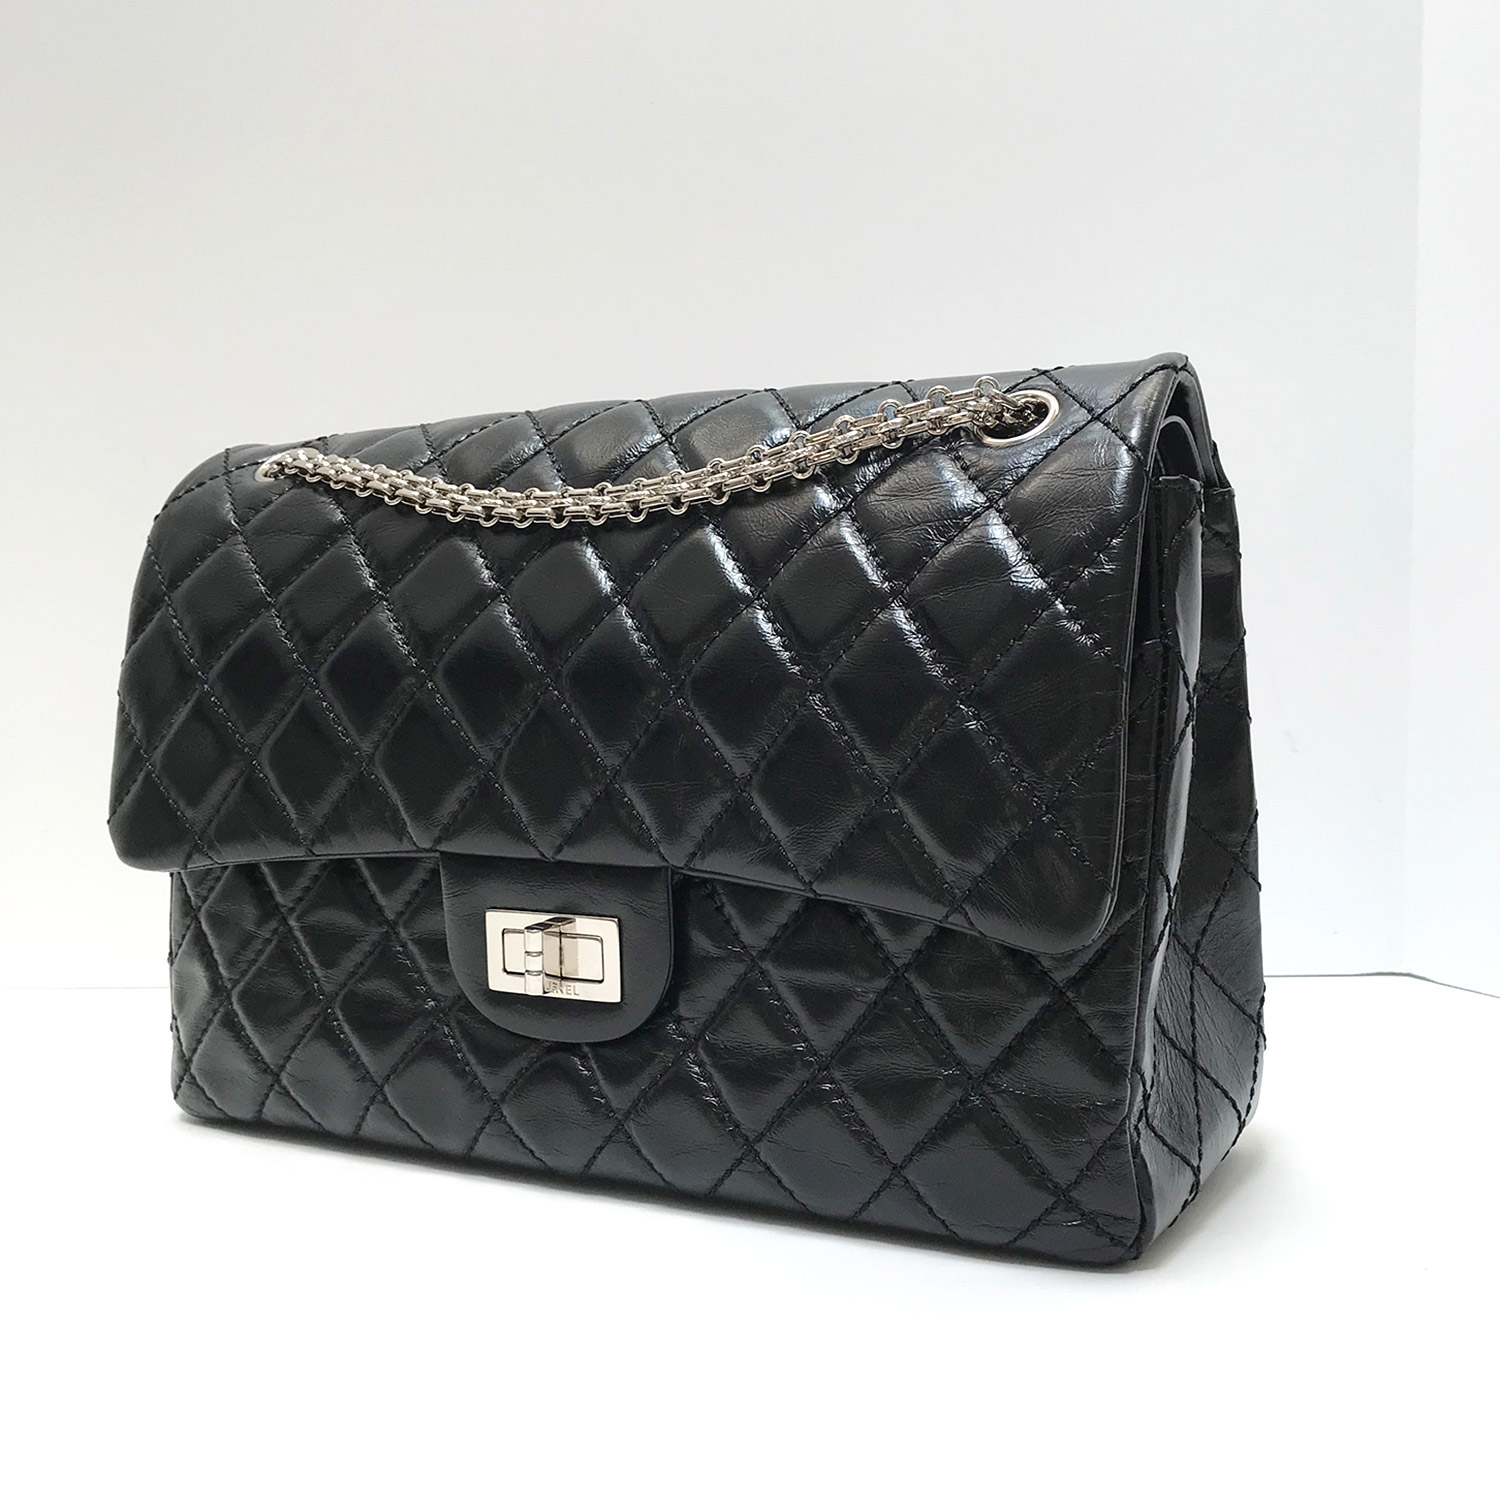 2873918256ff Chanel Black Leather 2.55 Reissue Jumbo Flap Bag with Mademoiselle Chain